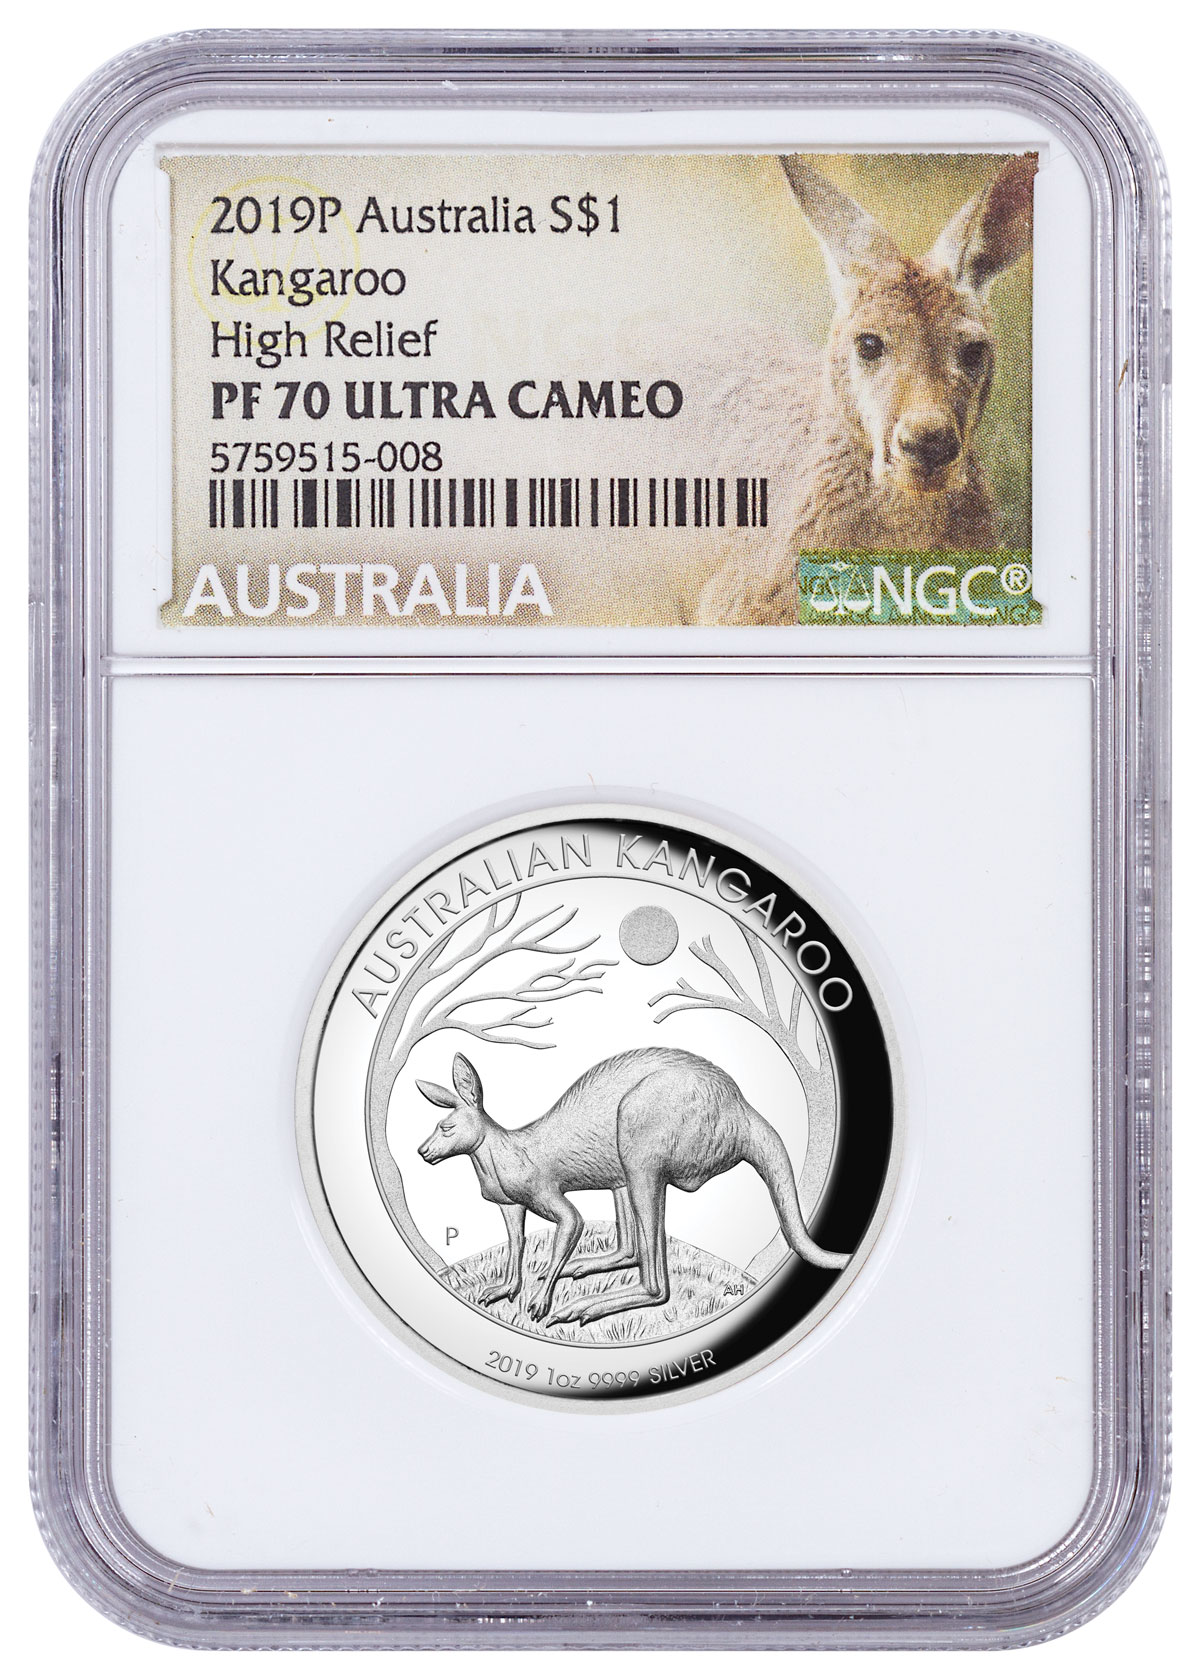 2018 P Australia HIGH RELIEF 1oz Silver Kangaroo $1 Coin NGC PF69 ER New Label